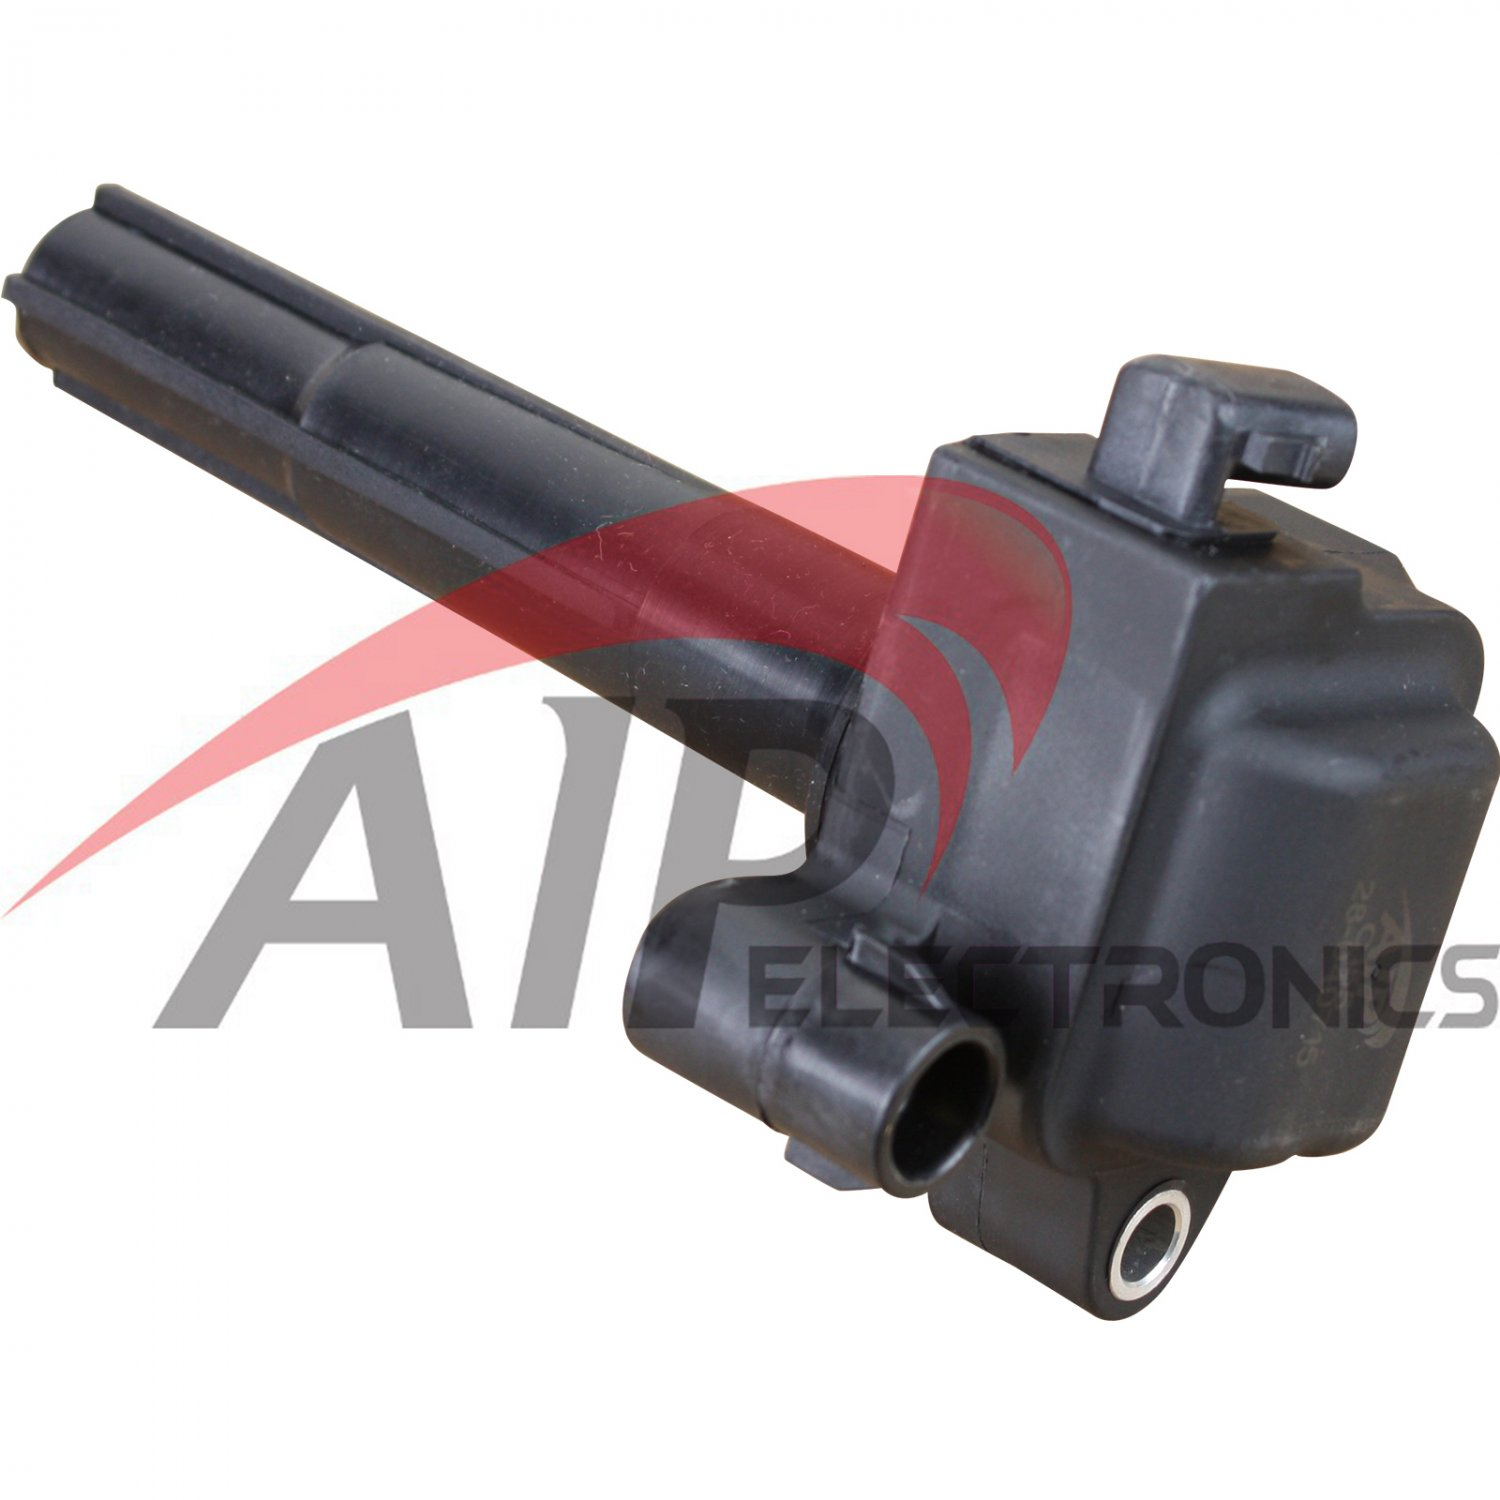 Brand New Ignition Coil Pack / Pencil / Coil on Plug Complete Toyota Lexus 3.0L V6 Oem Fit C155